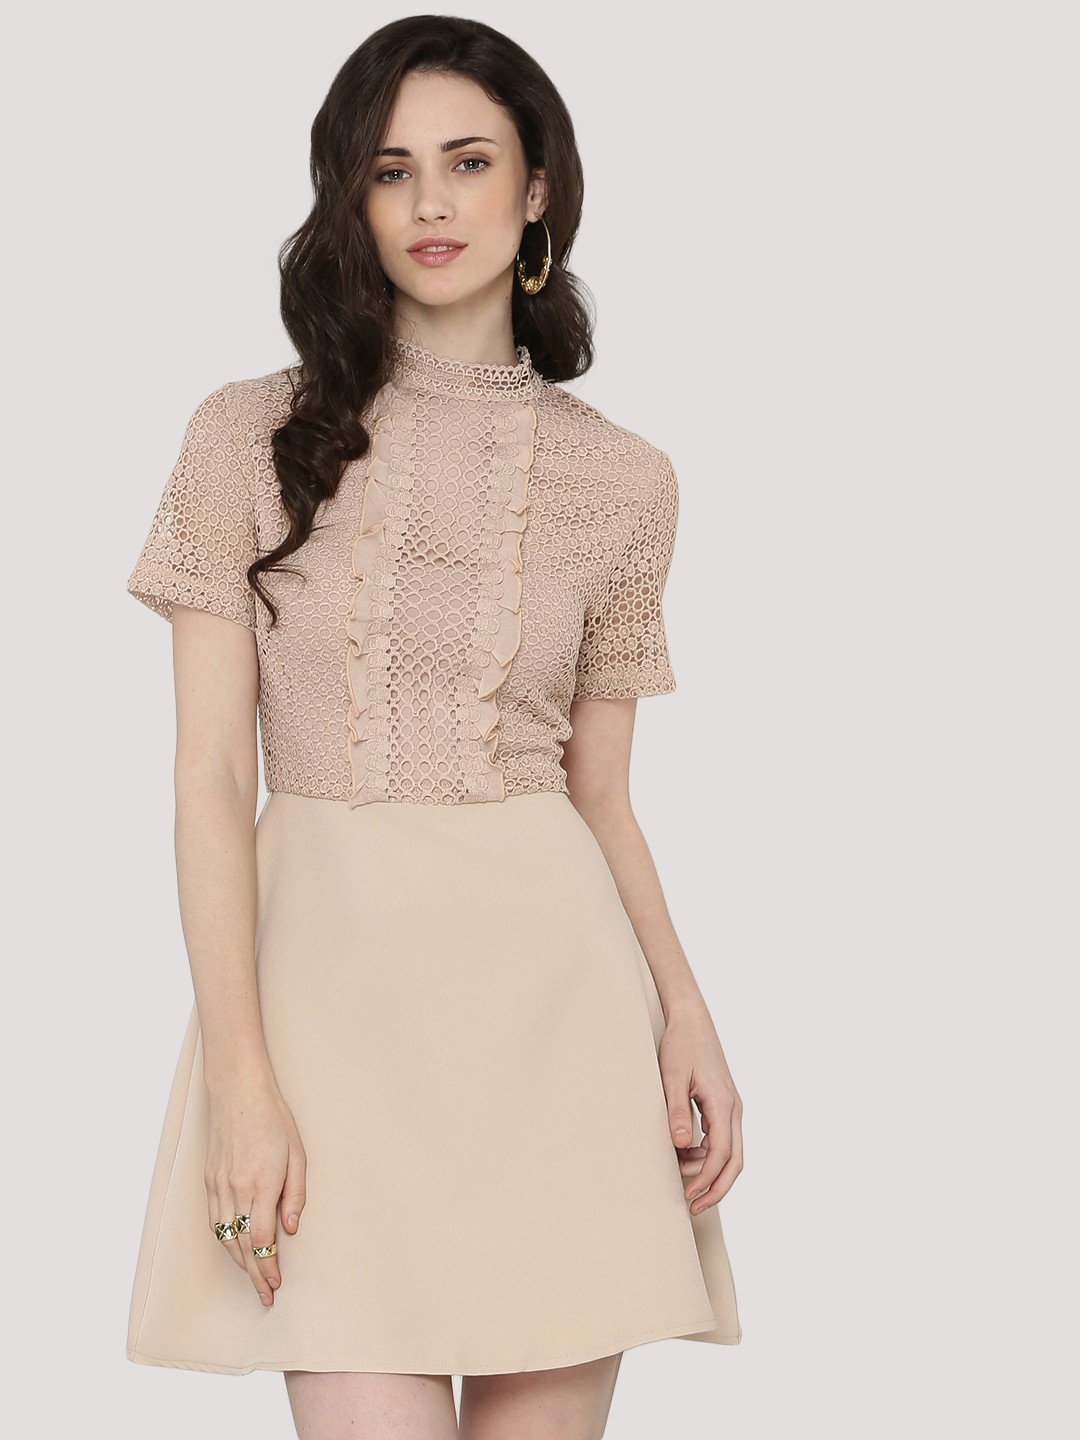 neutral undertone 3 - what colours suit your skin tone - nude dress - new look